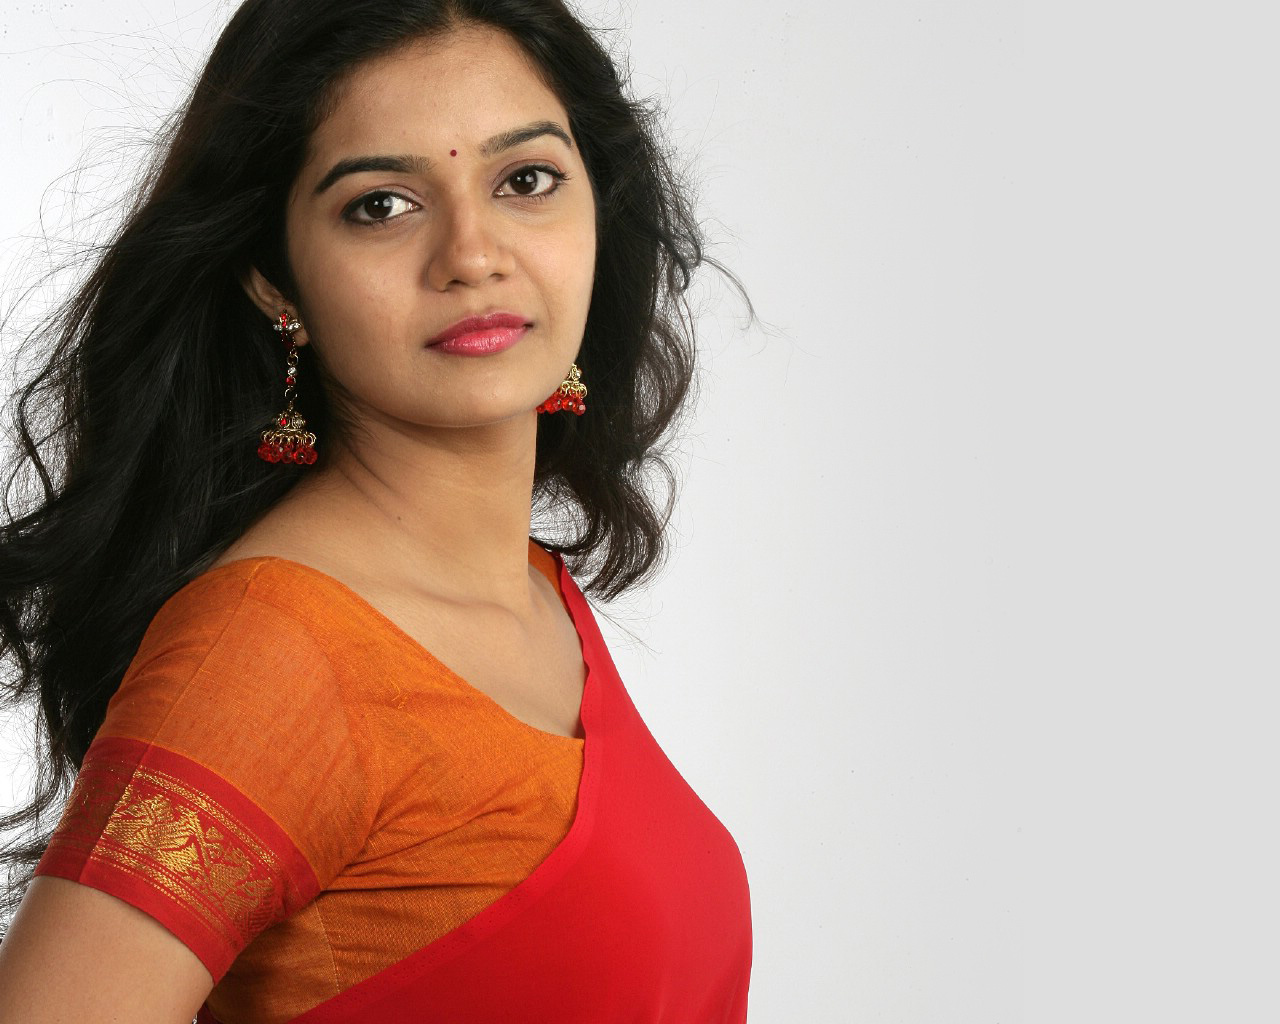 Colors Swathi in Red Saree 283.92 Kb